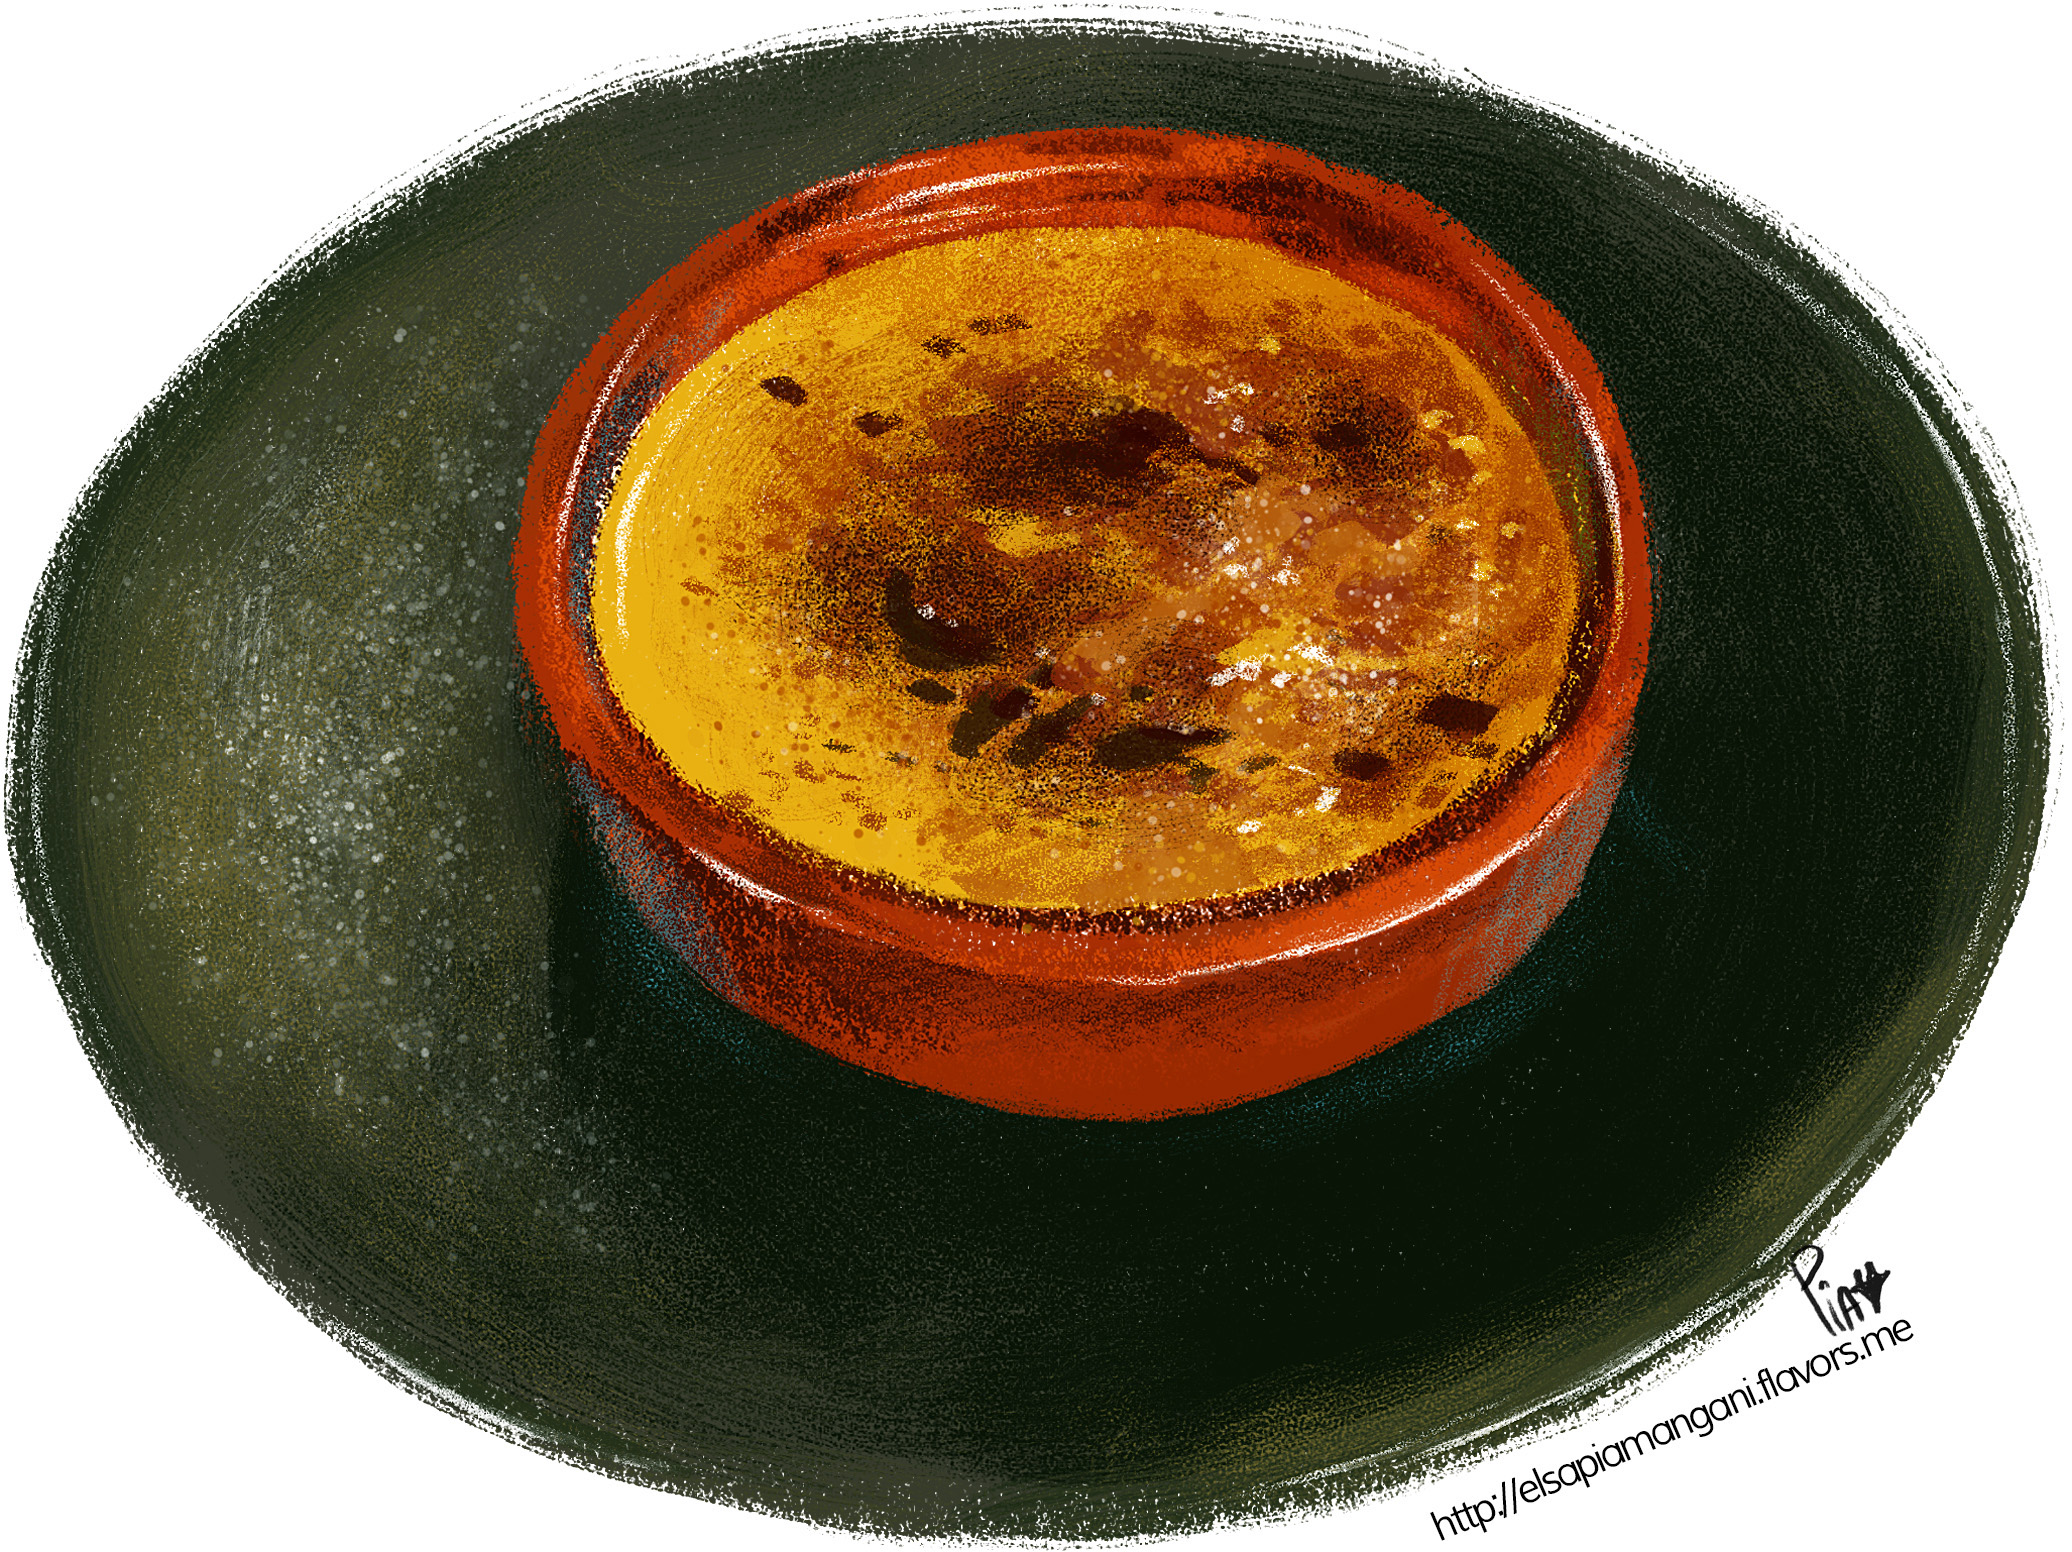 creme brulee on a green plate